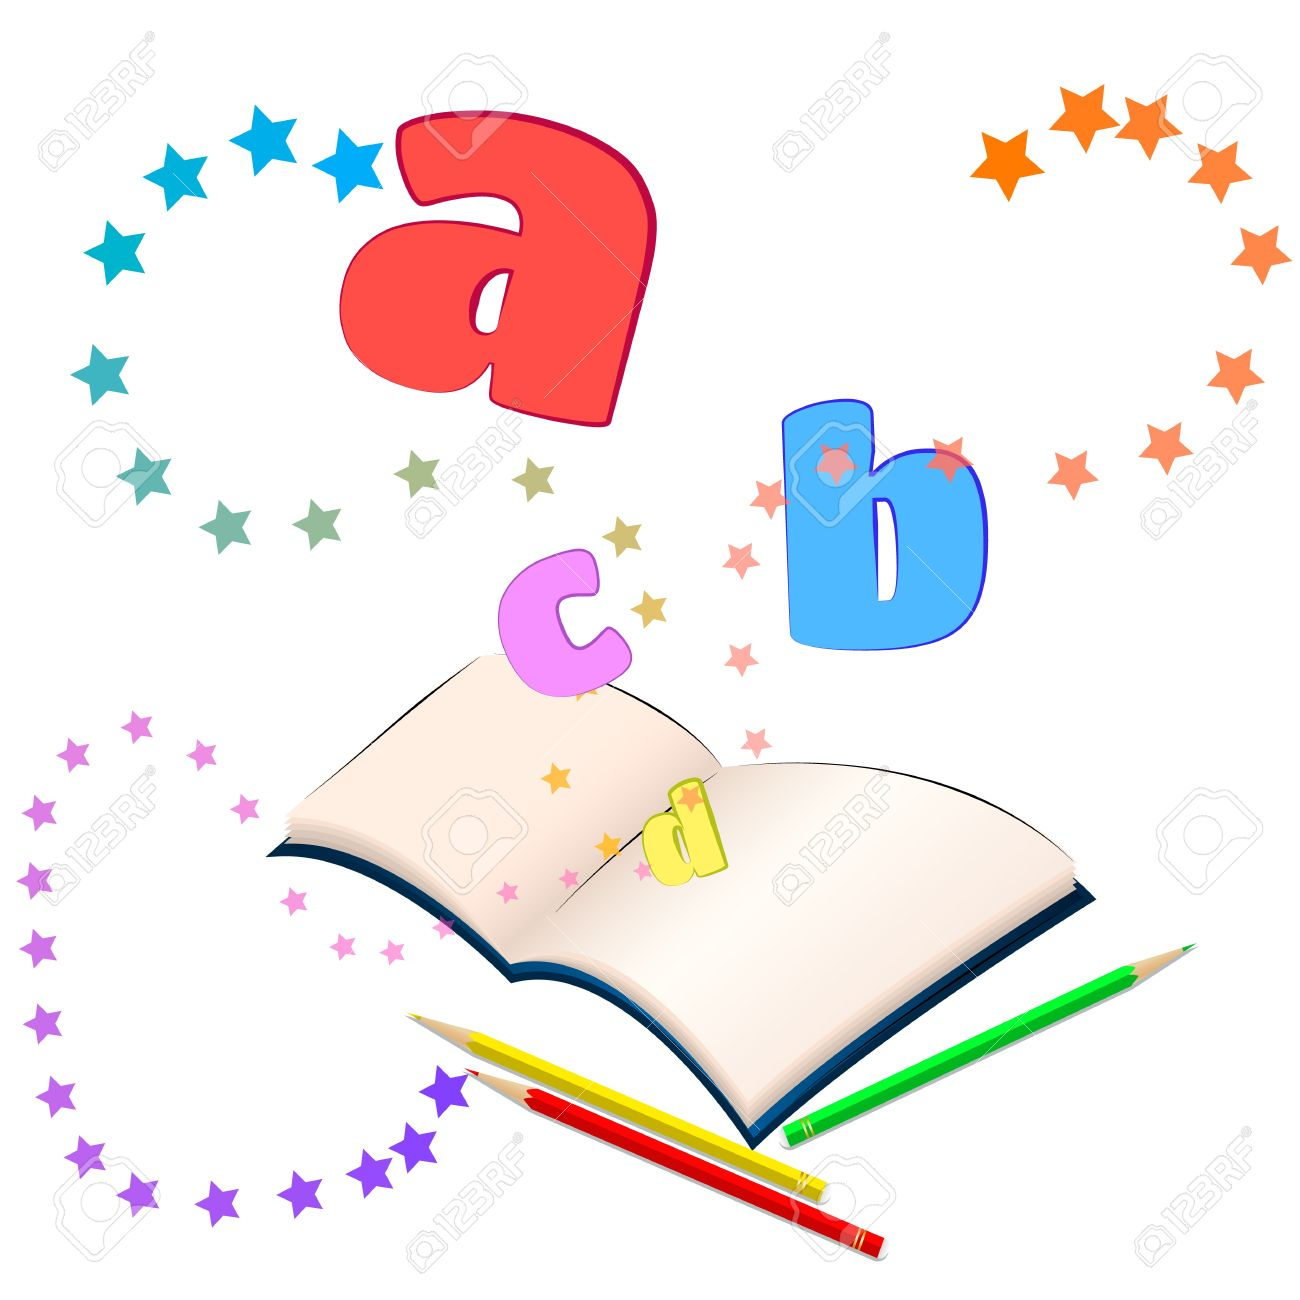 magic of learning open book with colorful stars and letters rh 123rf com